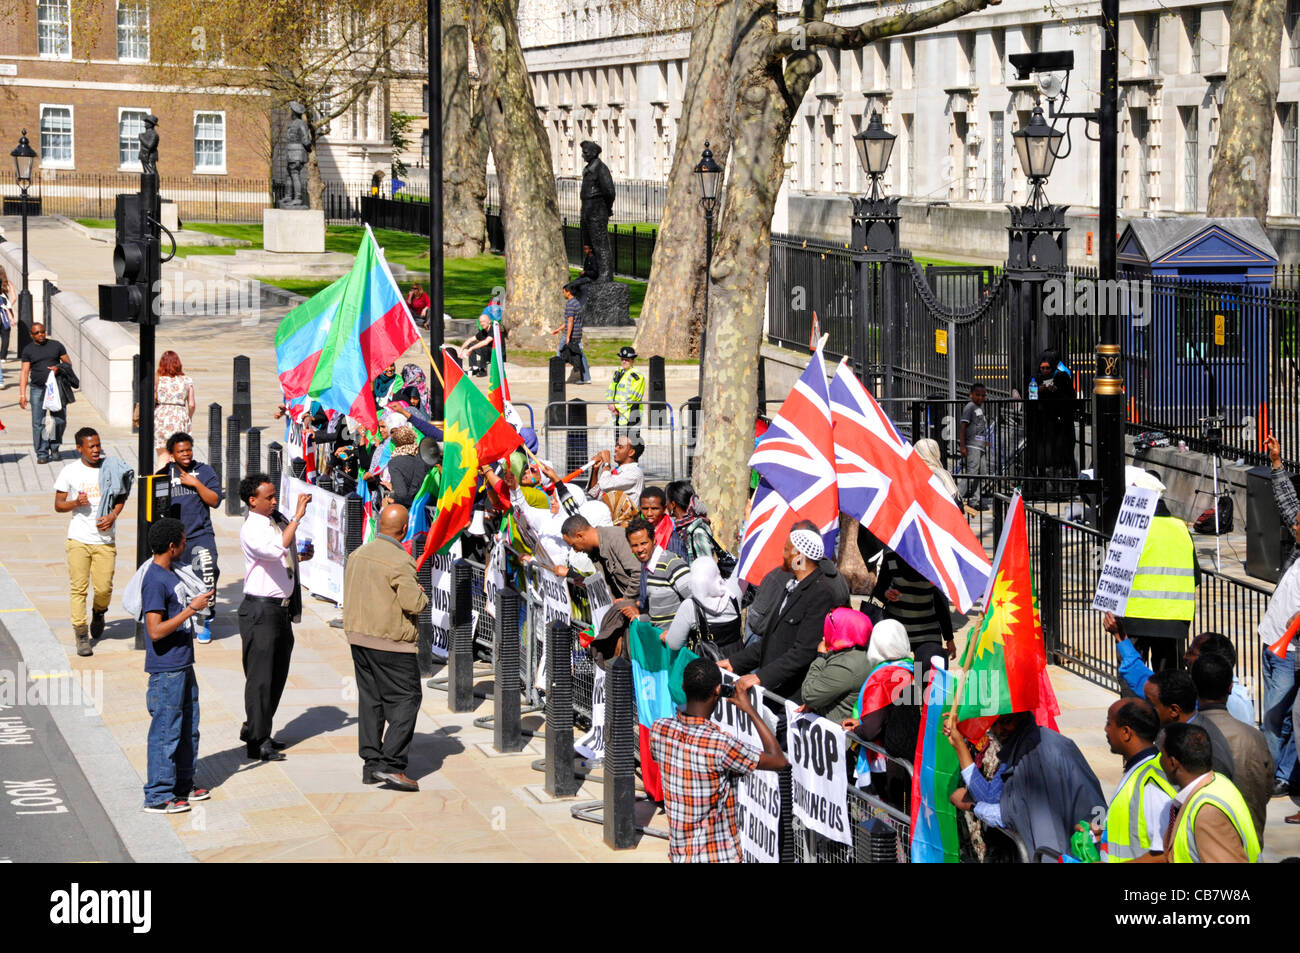 Protesters in demonstration about Ethiopia in Whitehall opposite Downing Street - Stock Image